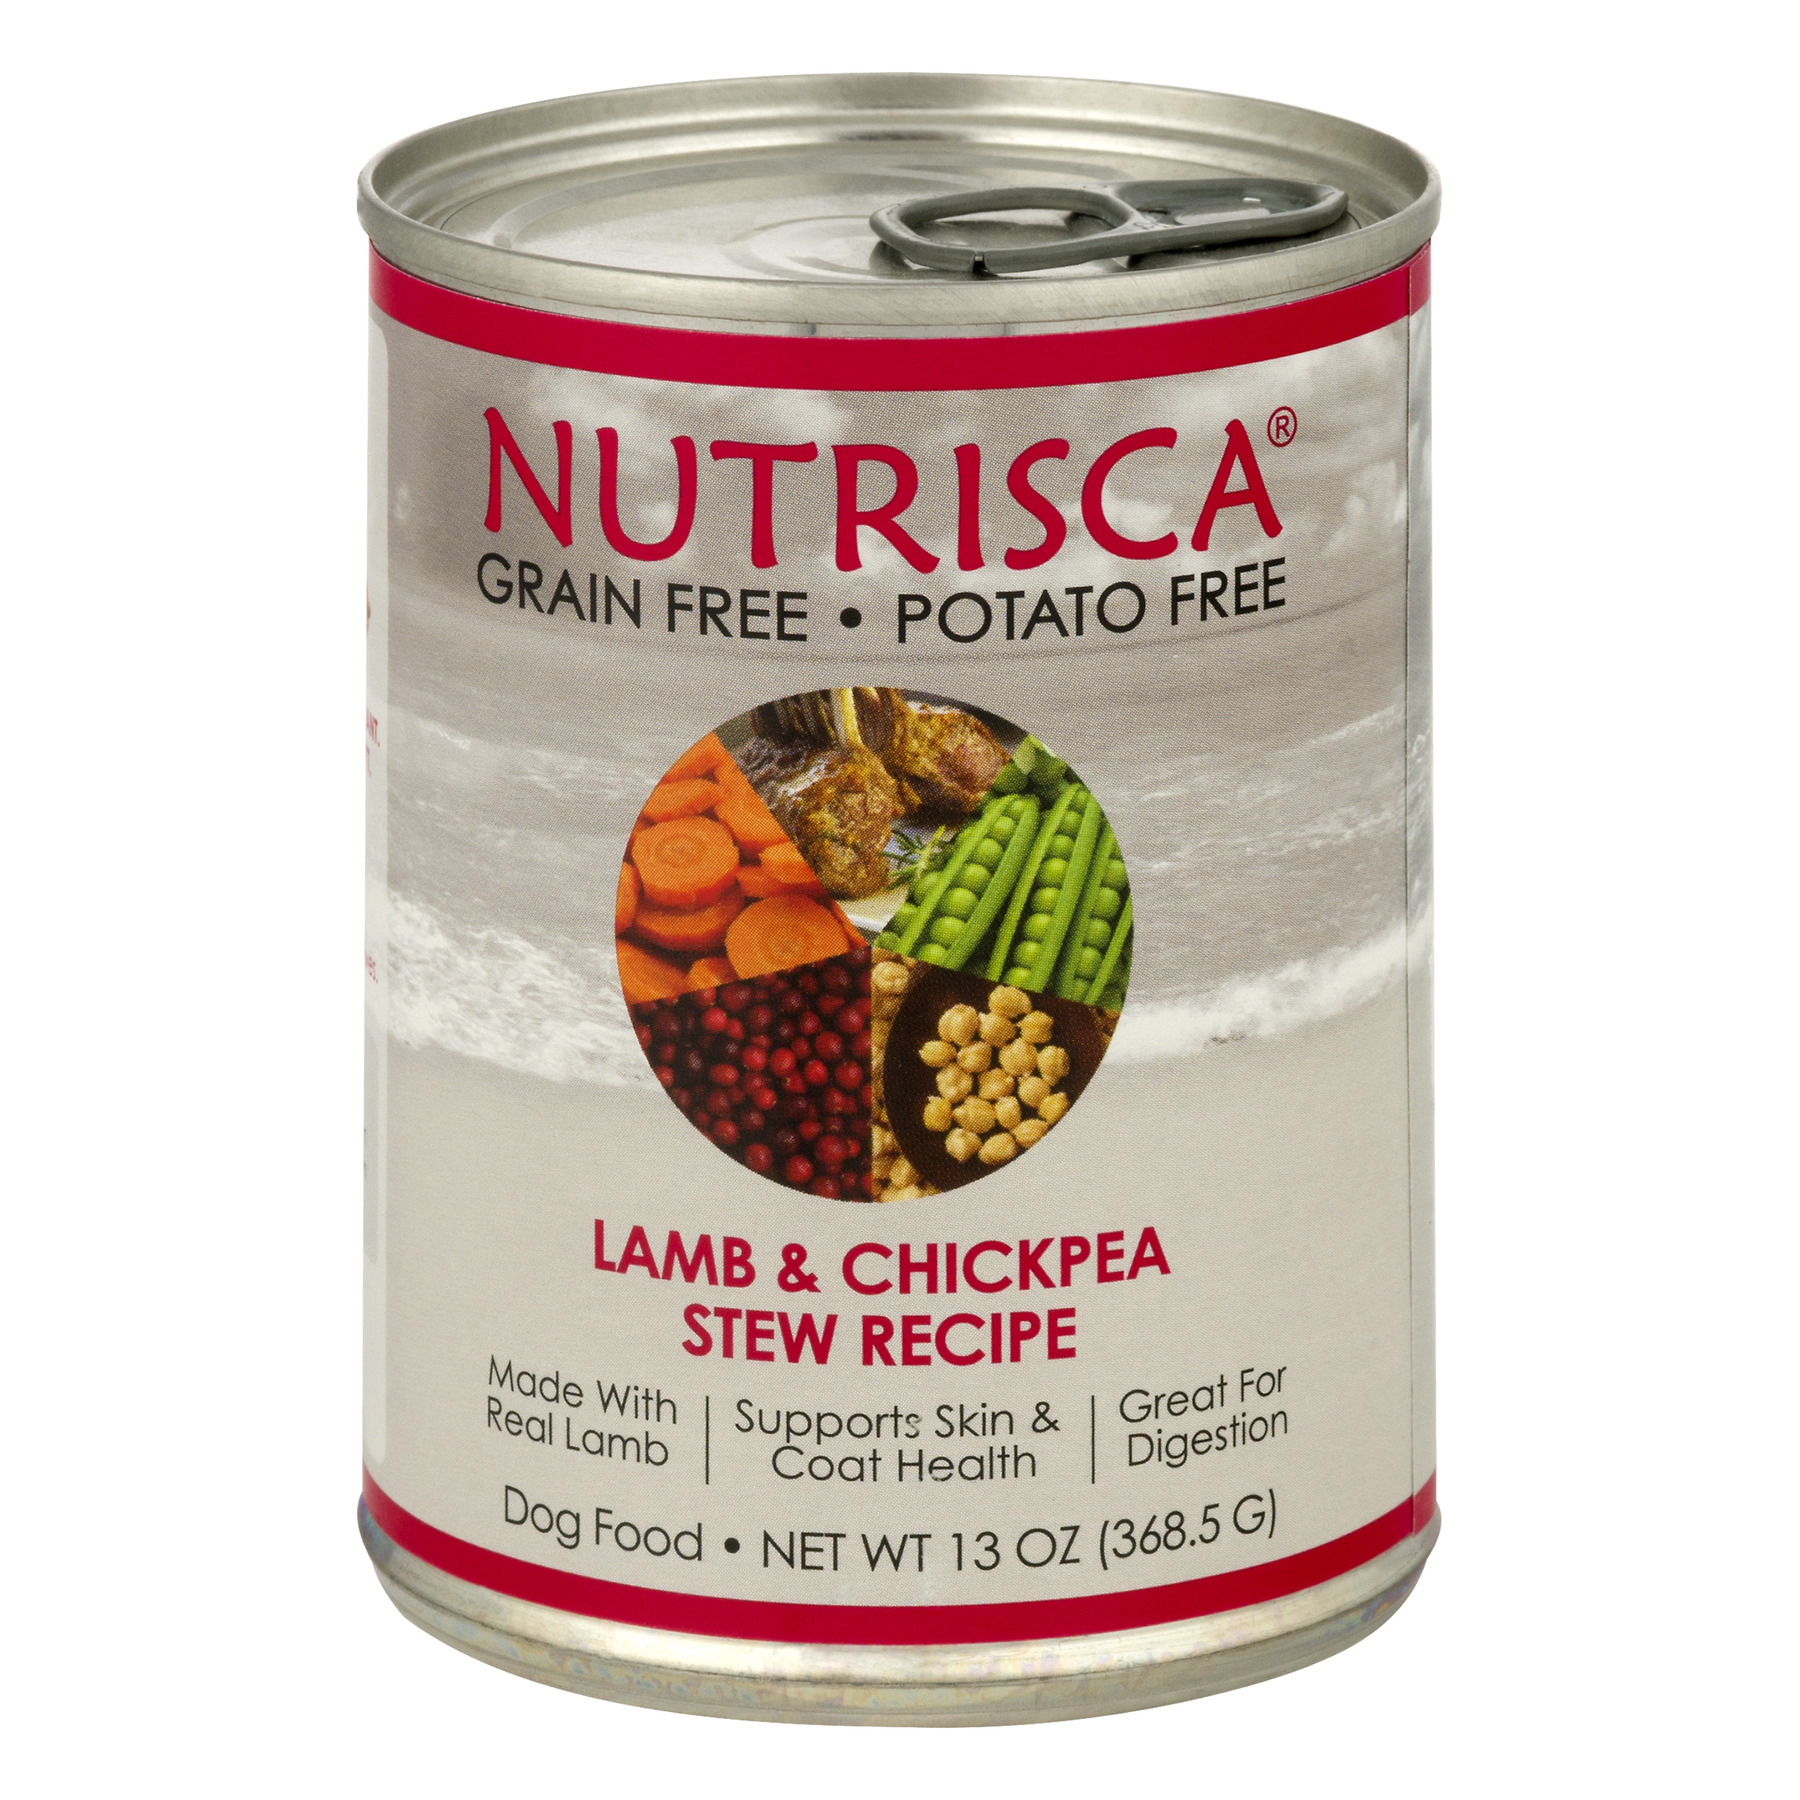 Nutrisca Dog Food Lamb & Chickpea Stew Recipe, 13.0 OZ